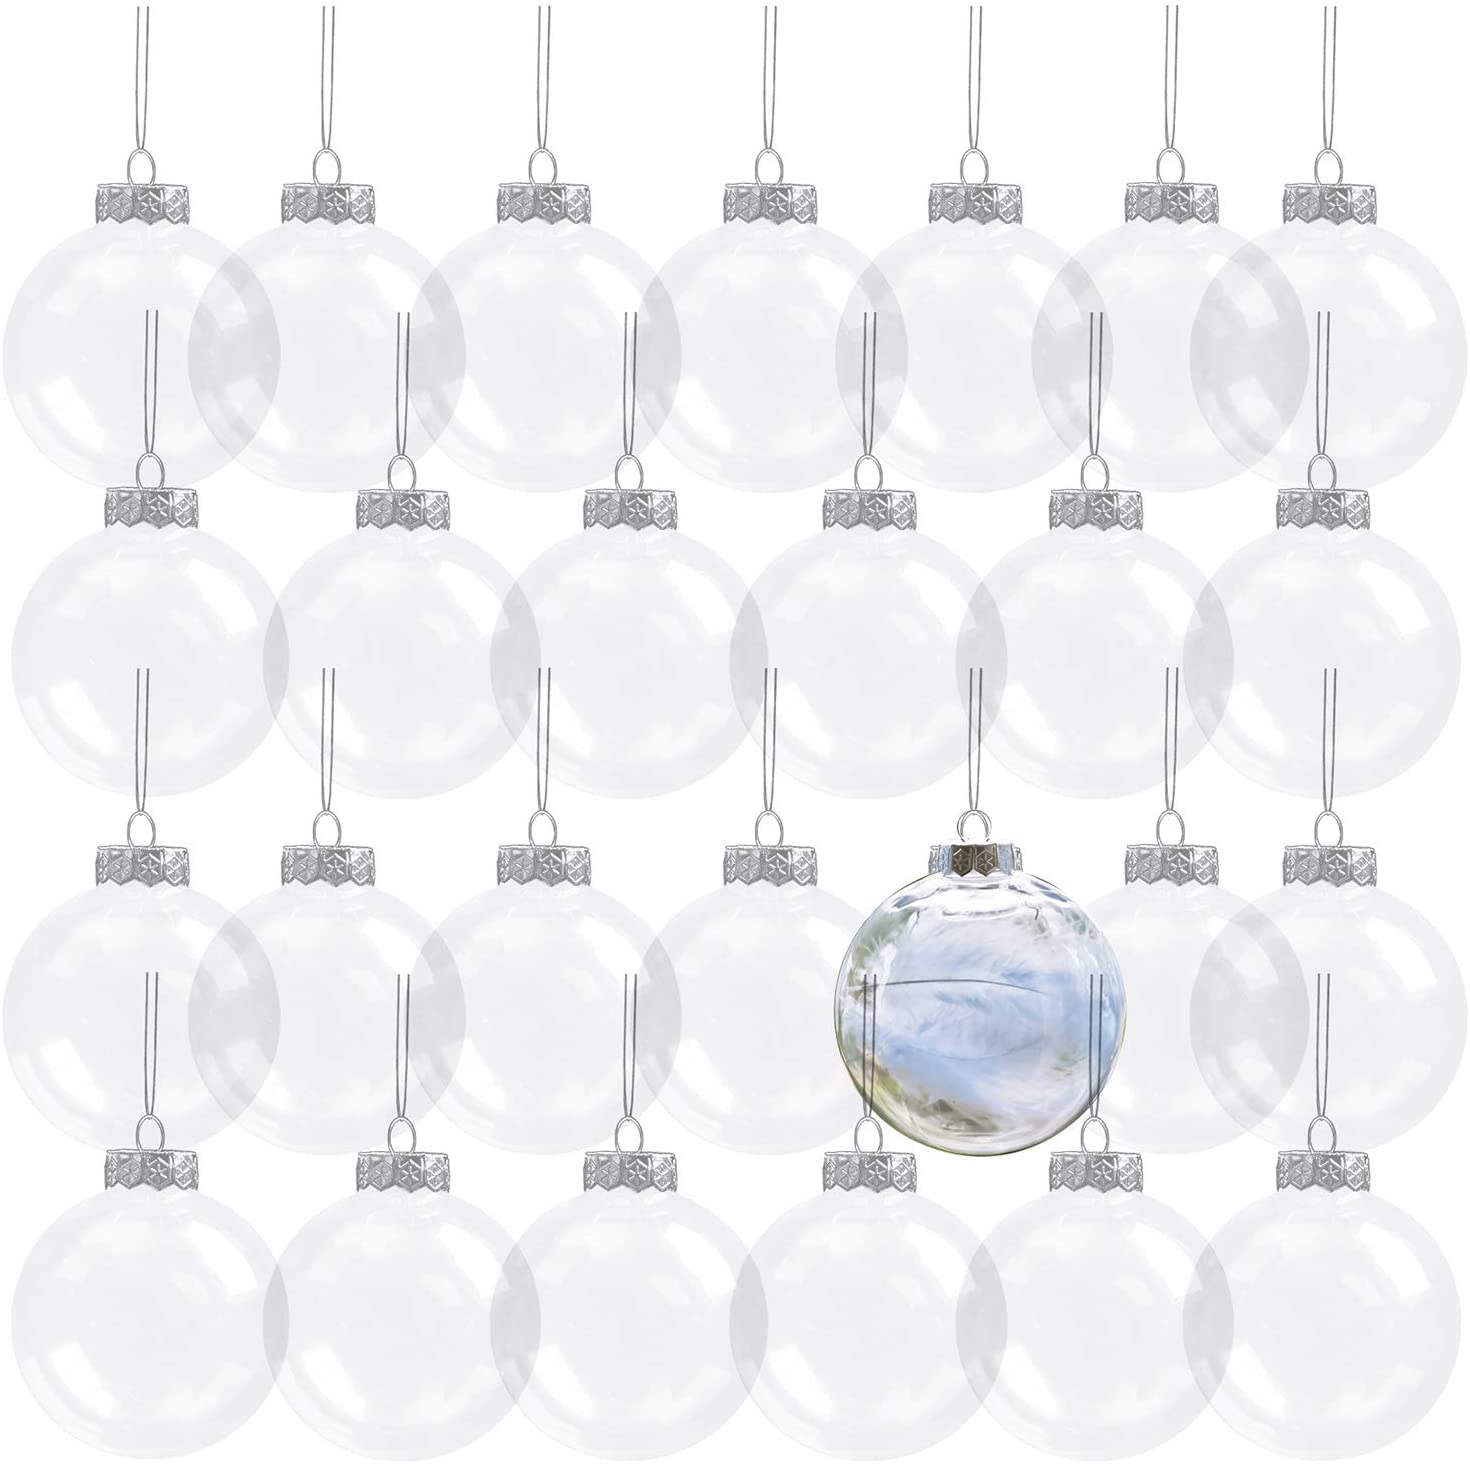 Kingrol 32 Pack 3.15 Inch Clear Plastic Fillable Ornament Balls, for DIY Craft Projects, Christmas, Wedding, Party, Home Decor